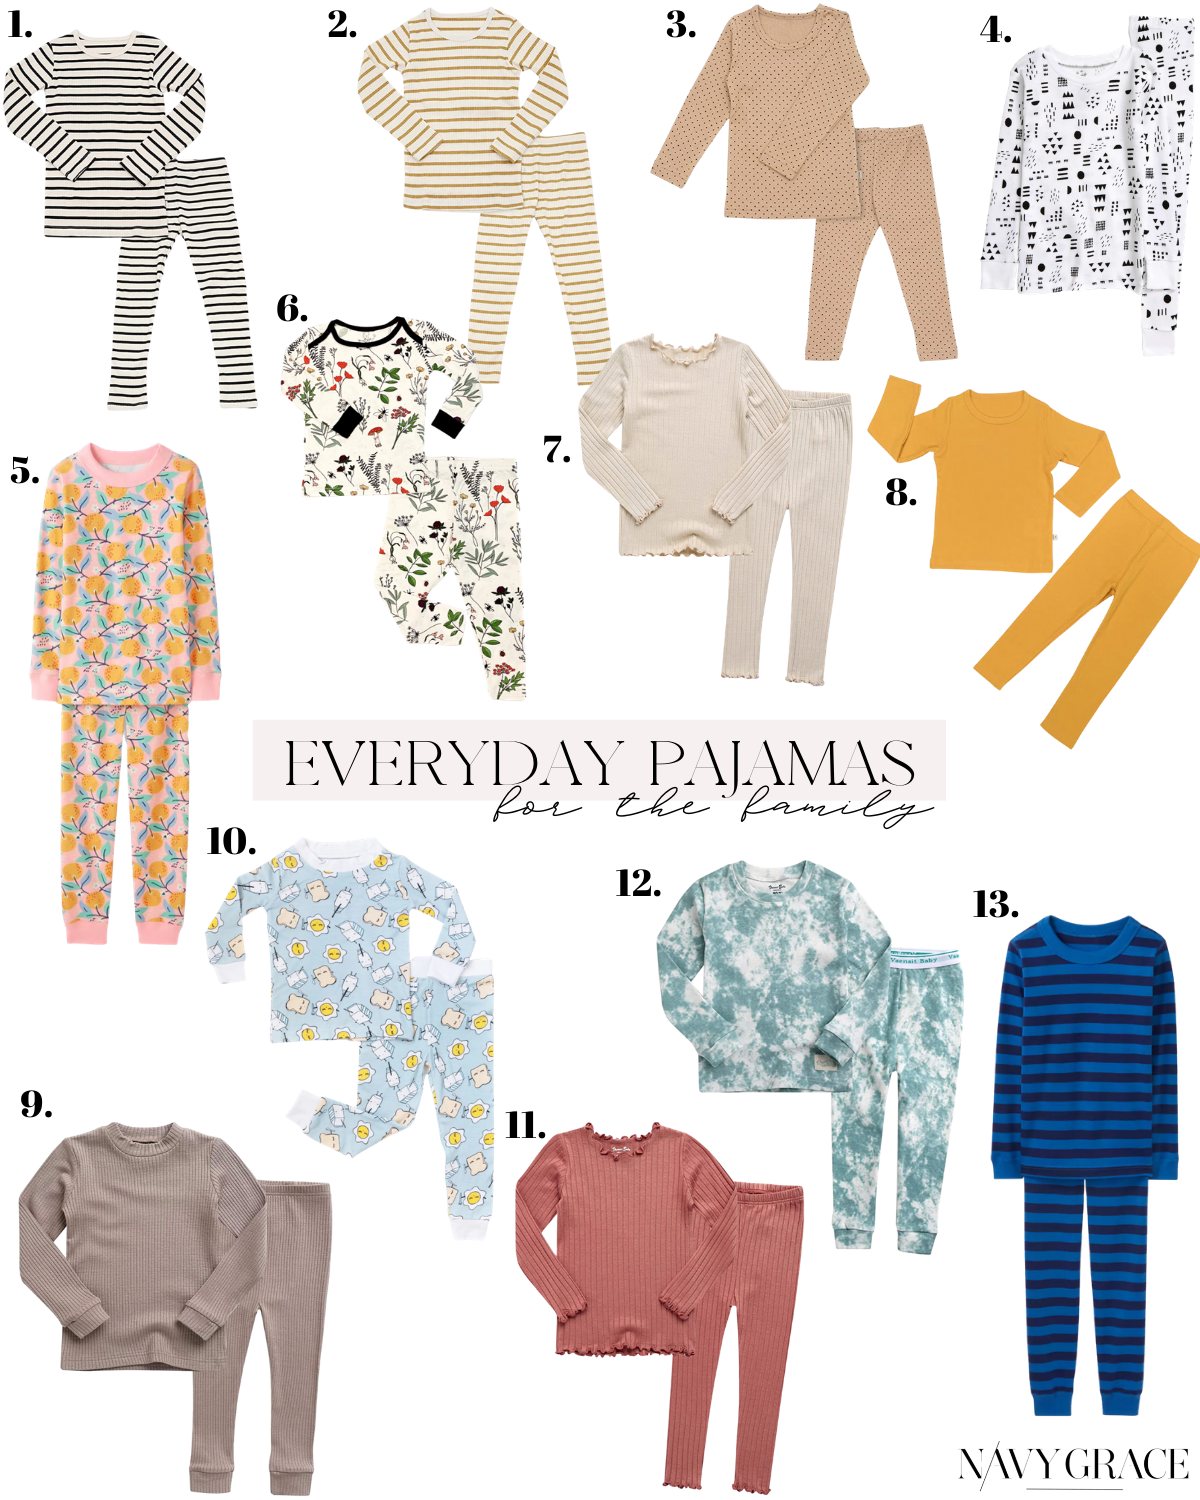 everyday pajamas for the family